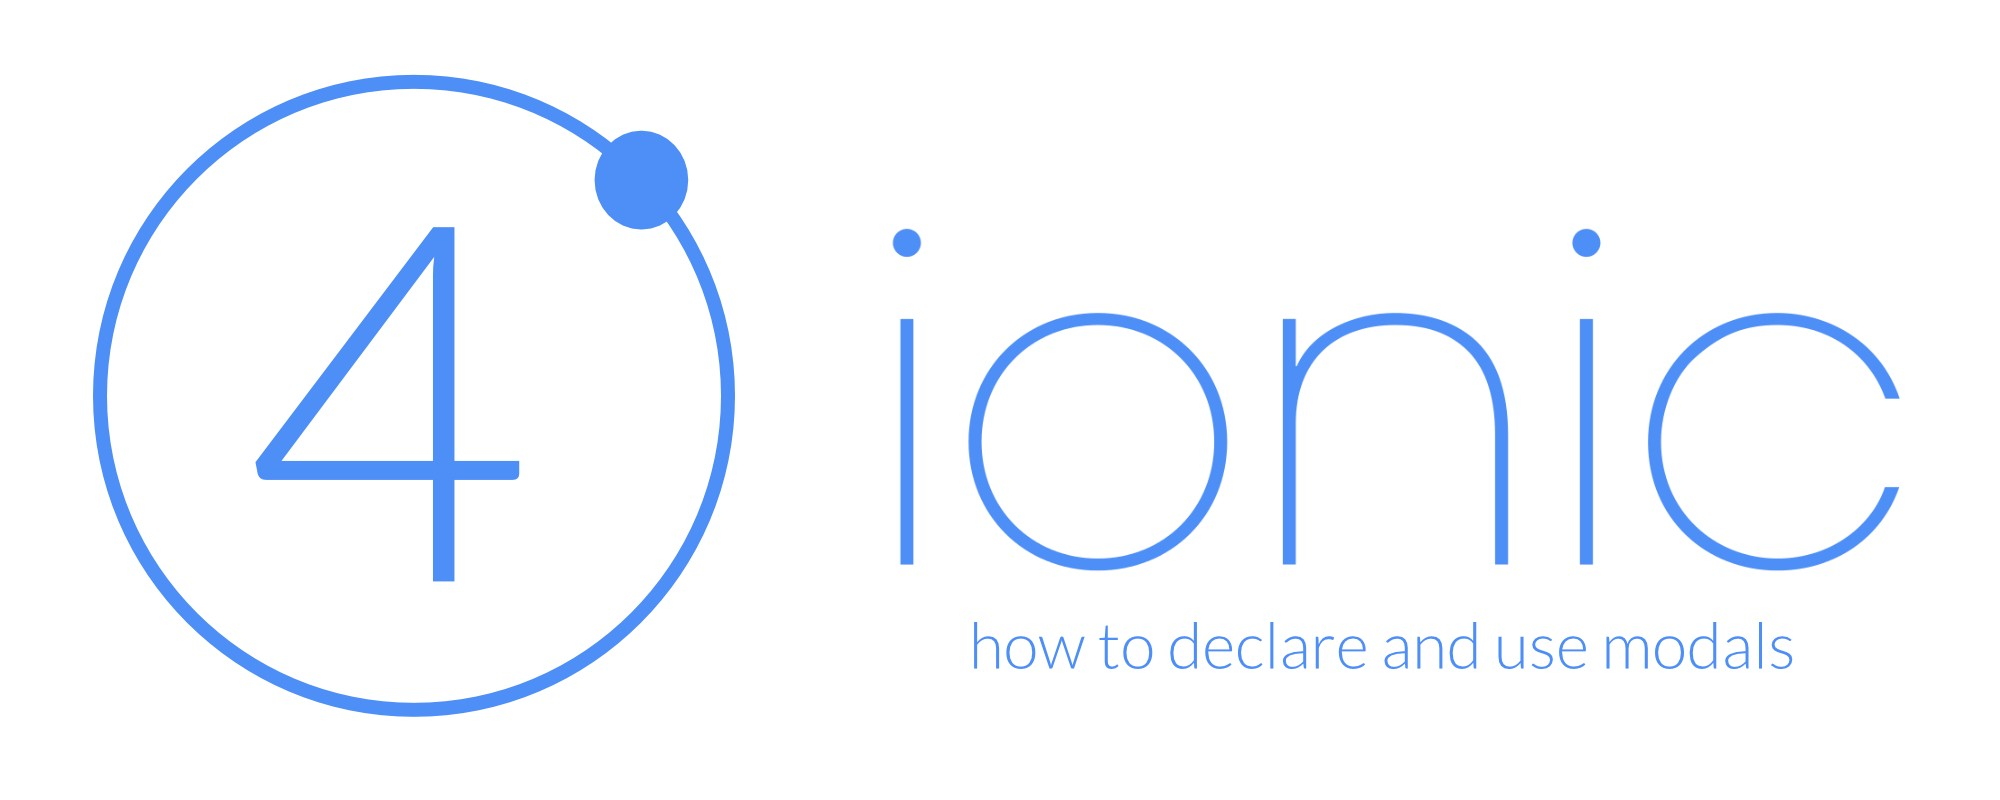 How to declare and use modals in Ionic v4 - David Dal Busco - Medium